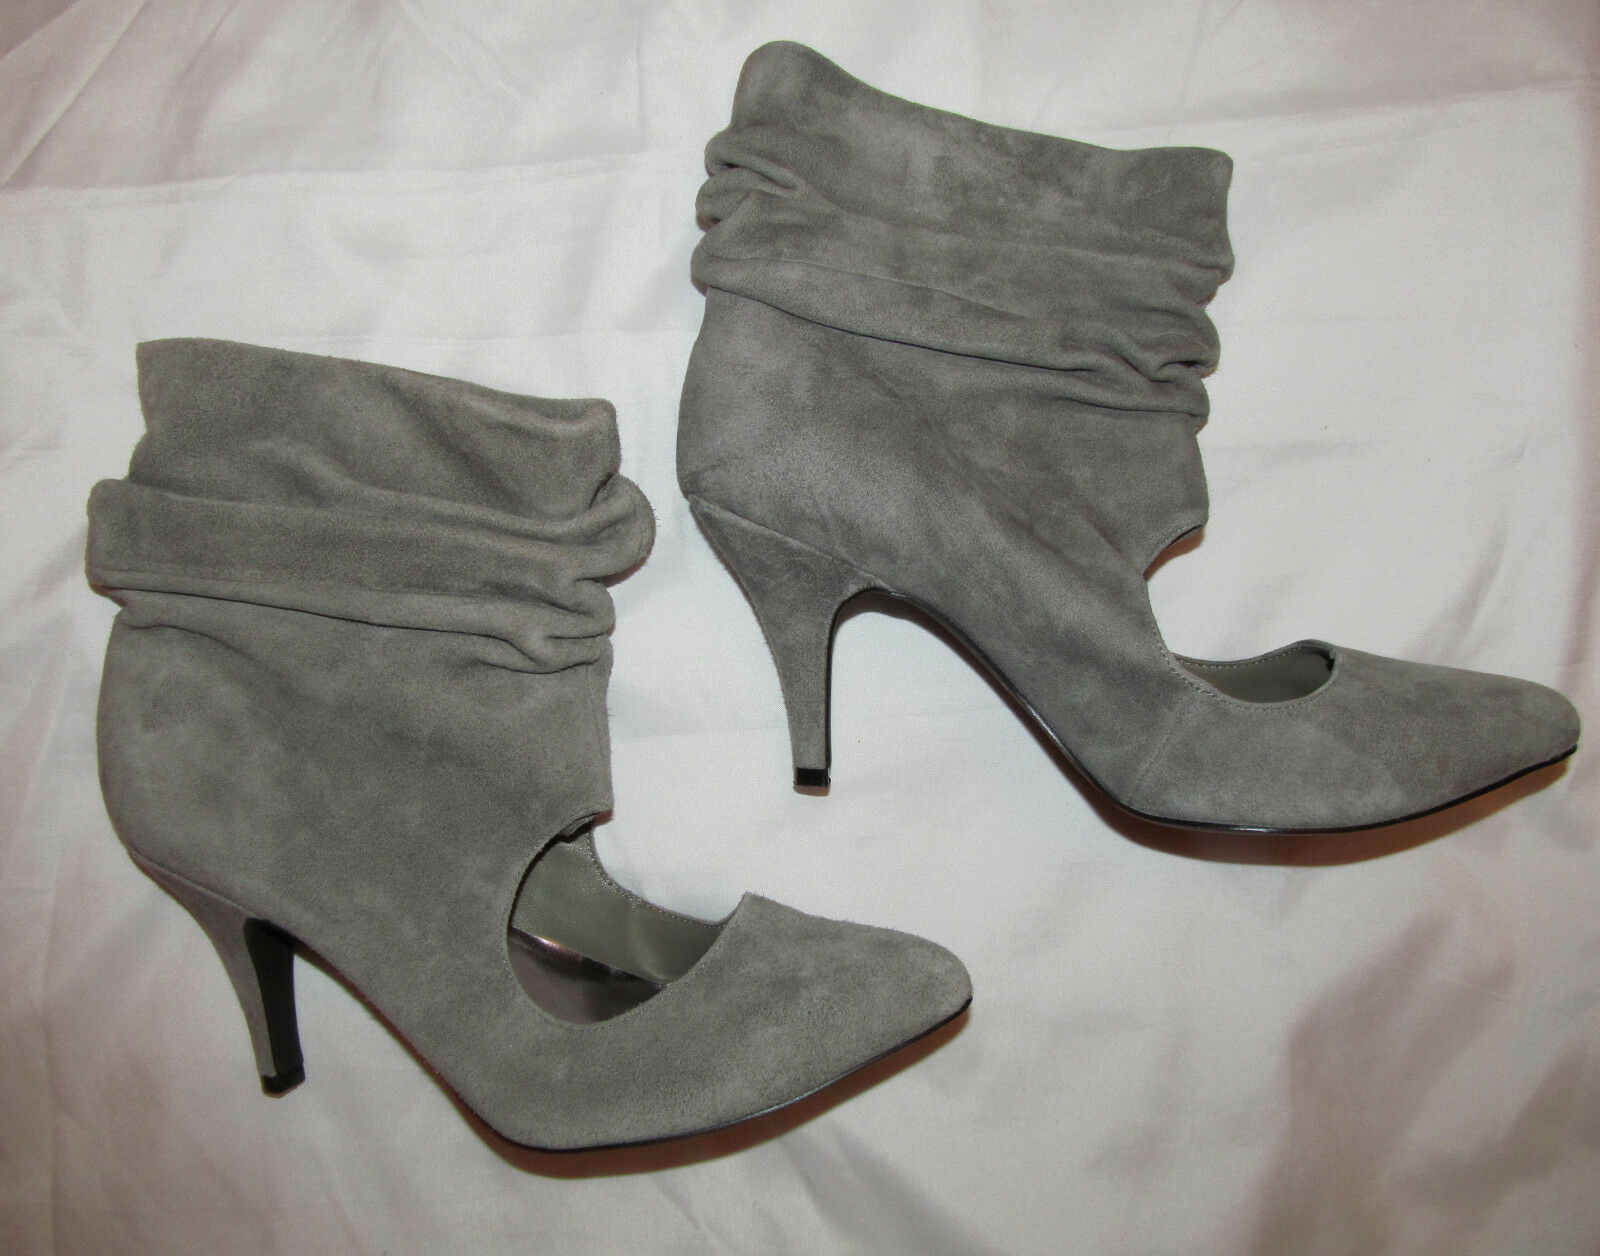 JEFFREY CAMPBELL CAMPBELL CAMPBELL PALACE slouchy gray suede key hole front sassy booties Stiefel 7 bf95bd